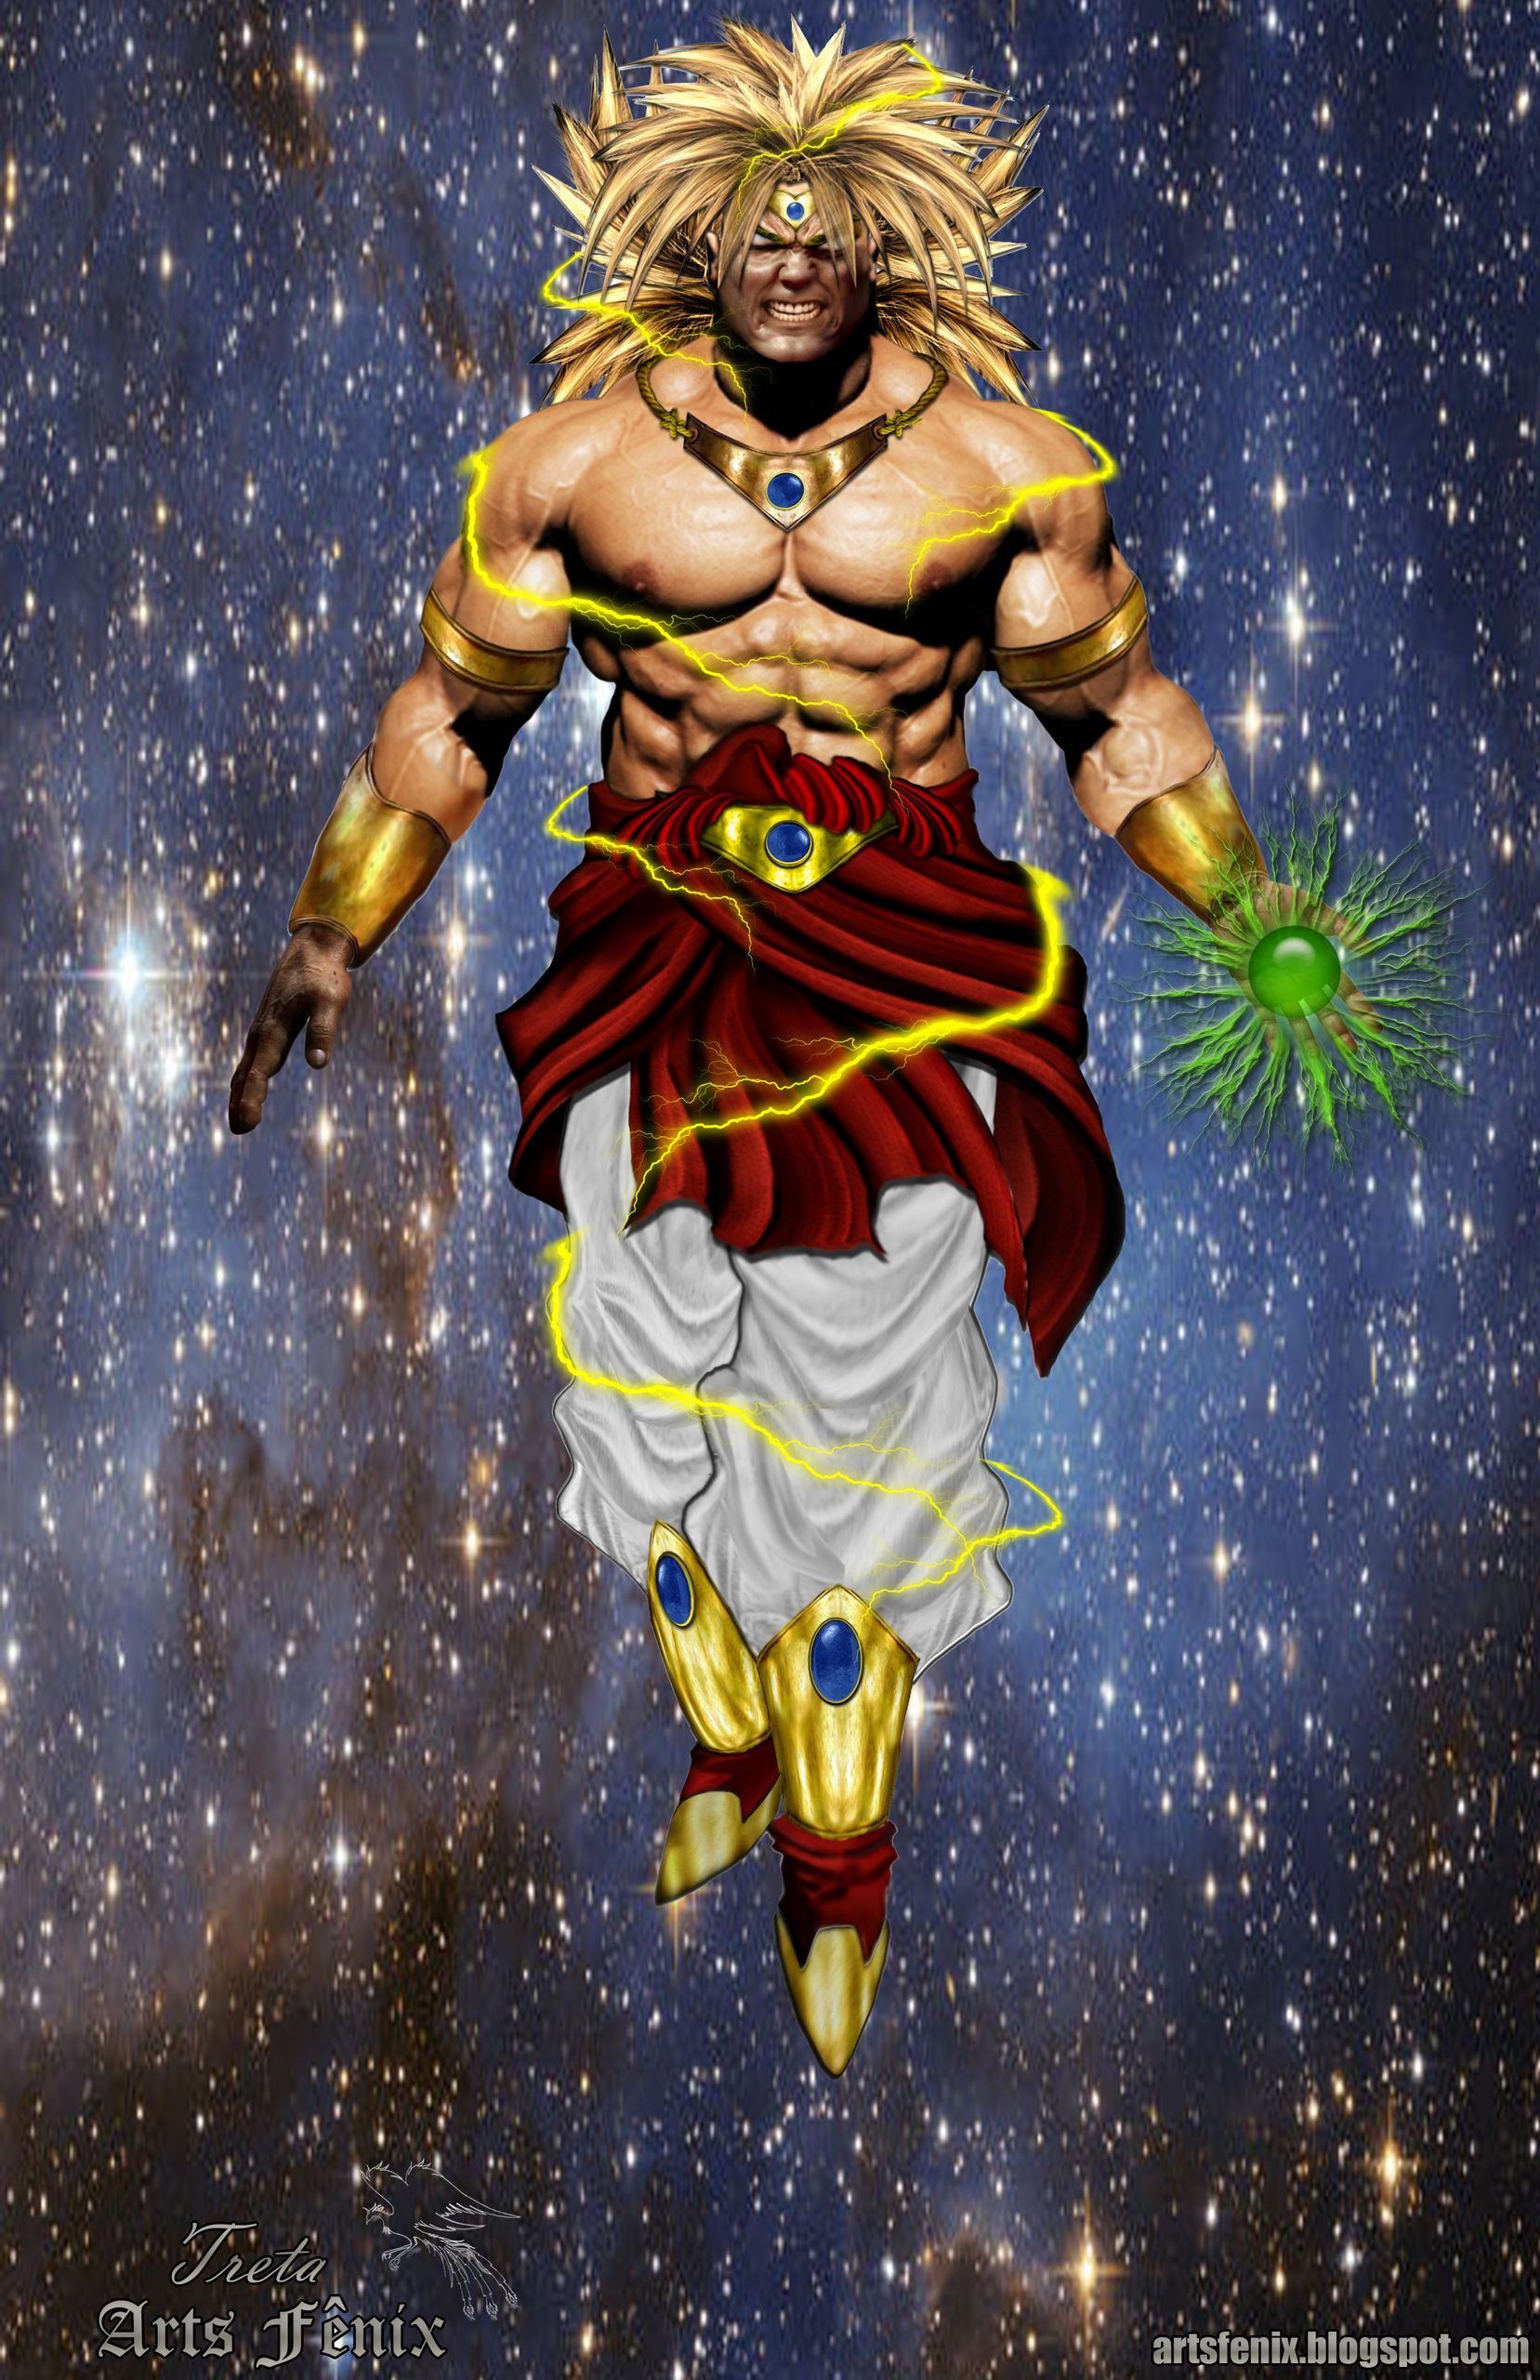 Wtf Is That Broly In Real Life Lol Anime Dragon Ball Super Dragon Ball Artwork Dragon Ball